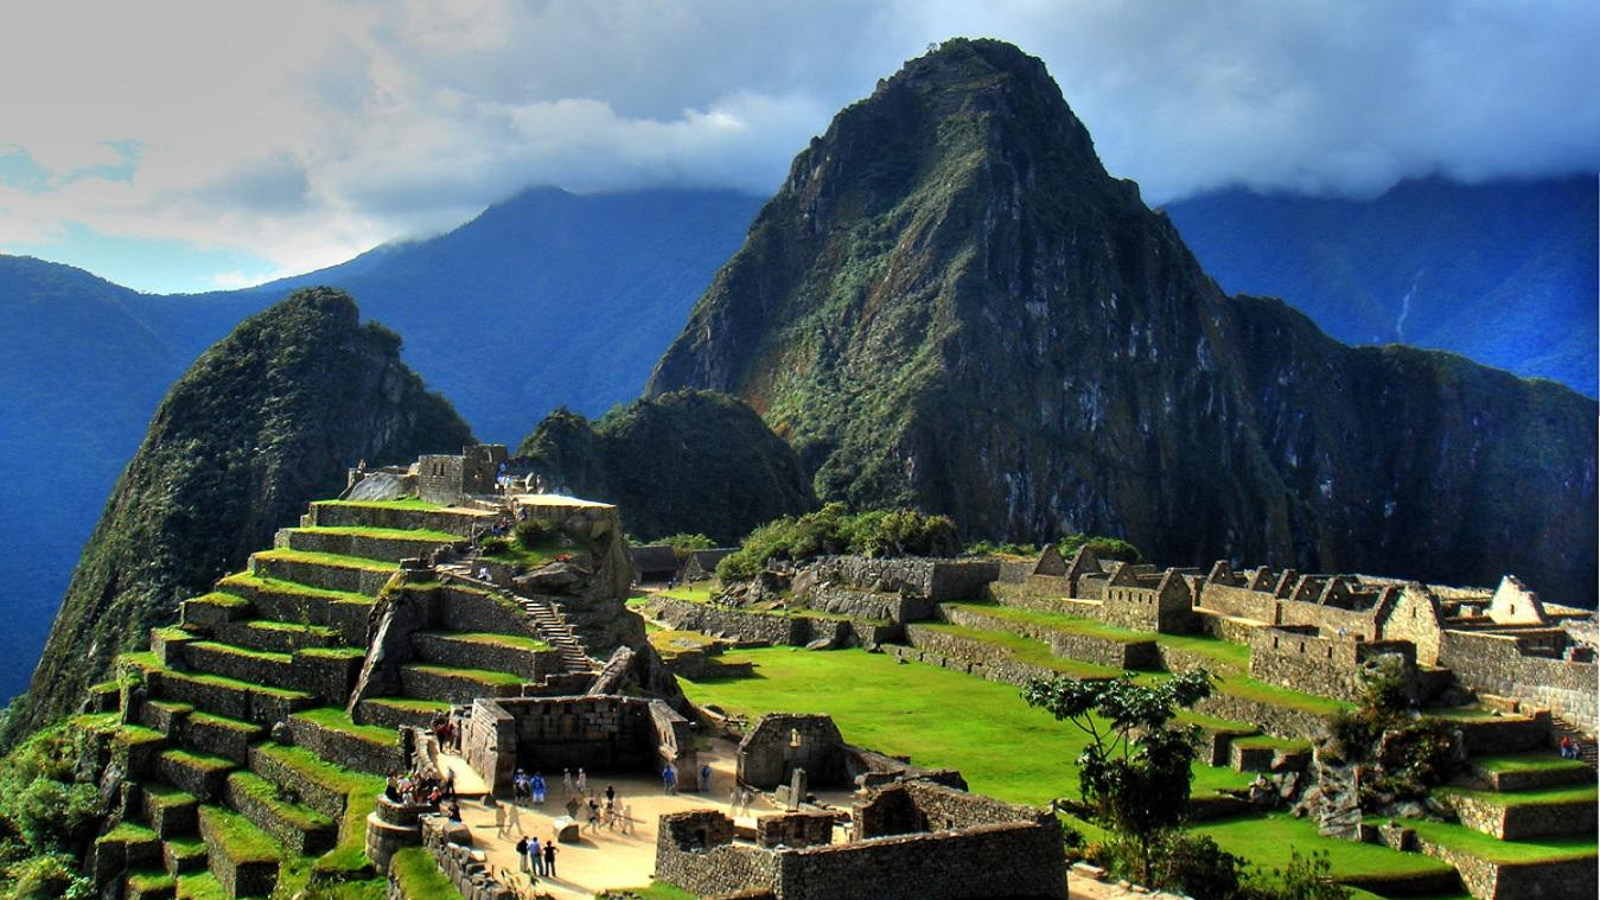 The Greatest Mystery Of The Inca Empire Was Its Strange